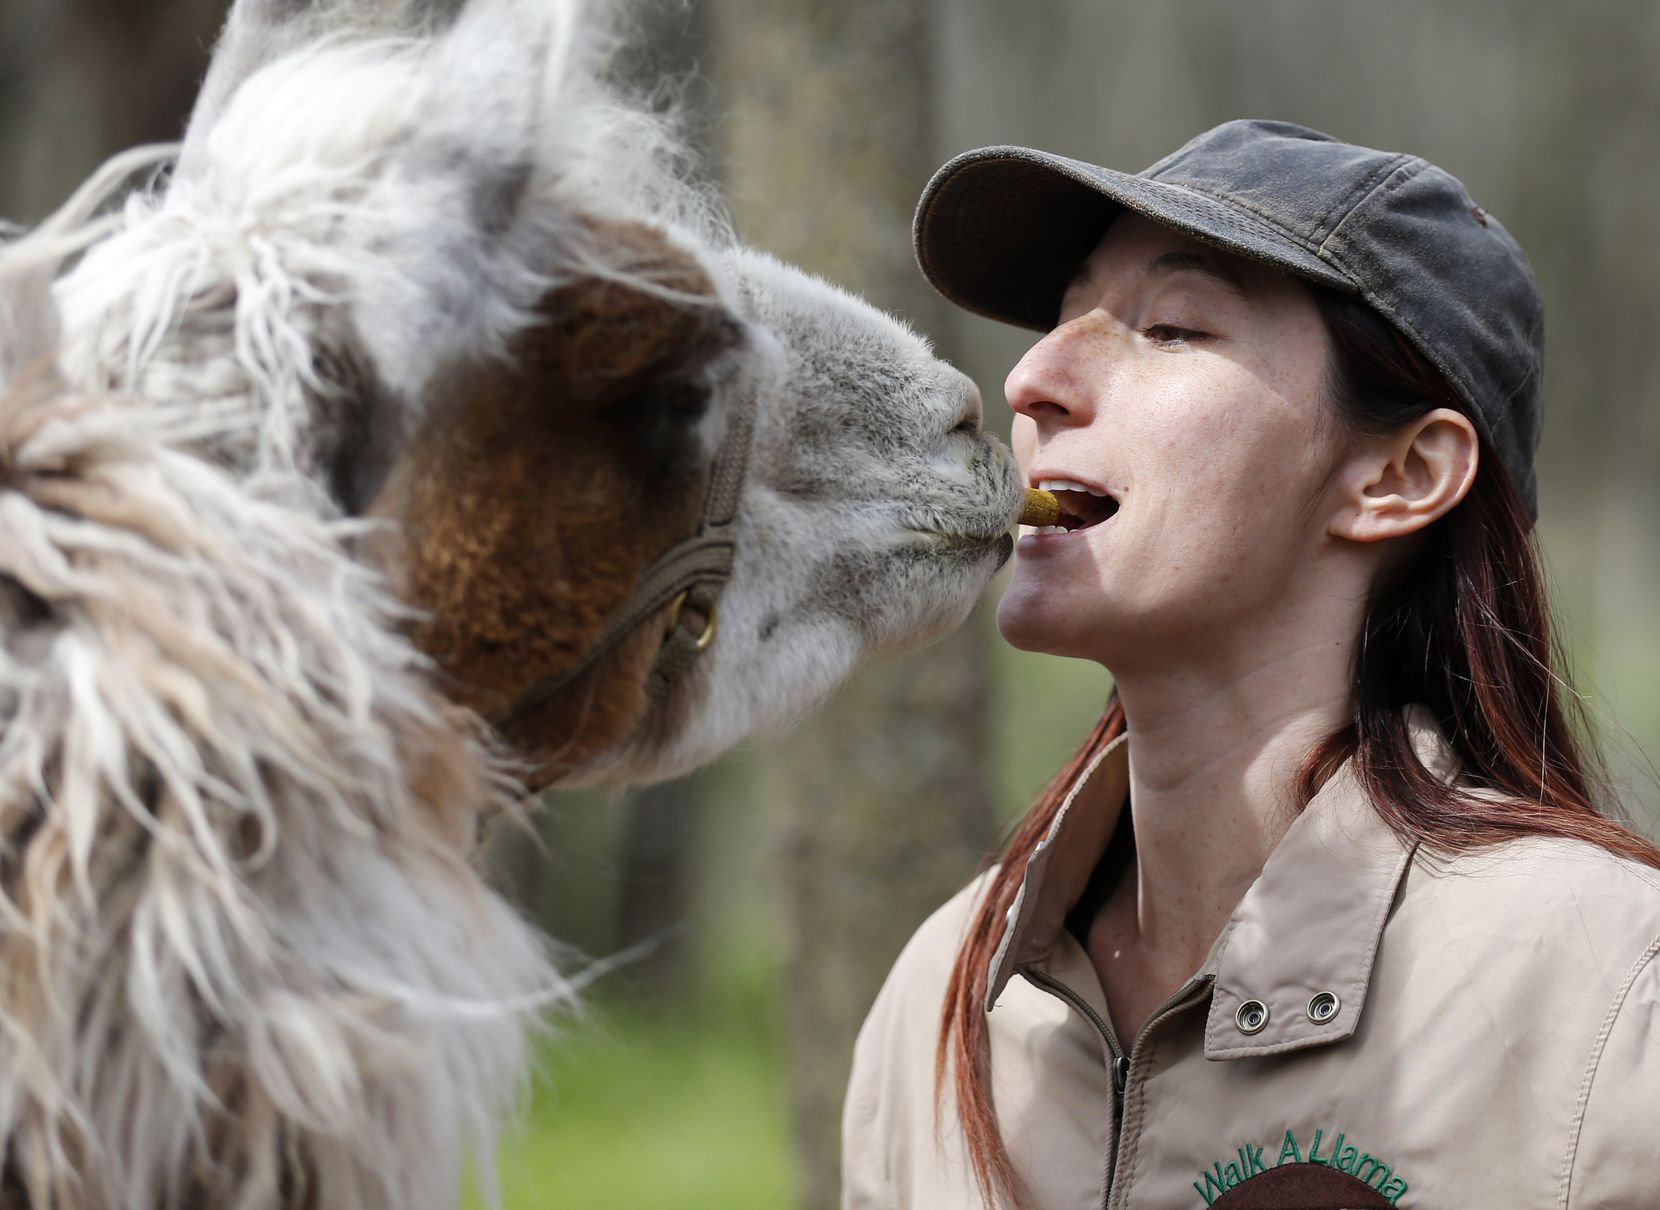 Jenni Brucato shows guests how to hold a treat as Como T. Llama gently takes it from her during a Llama Walk session at ShangriLlama.